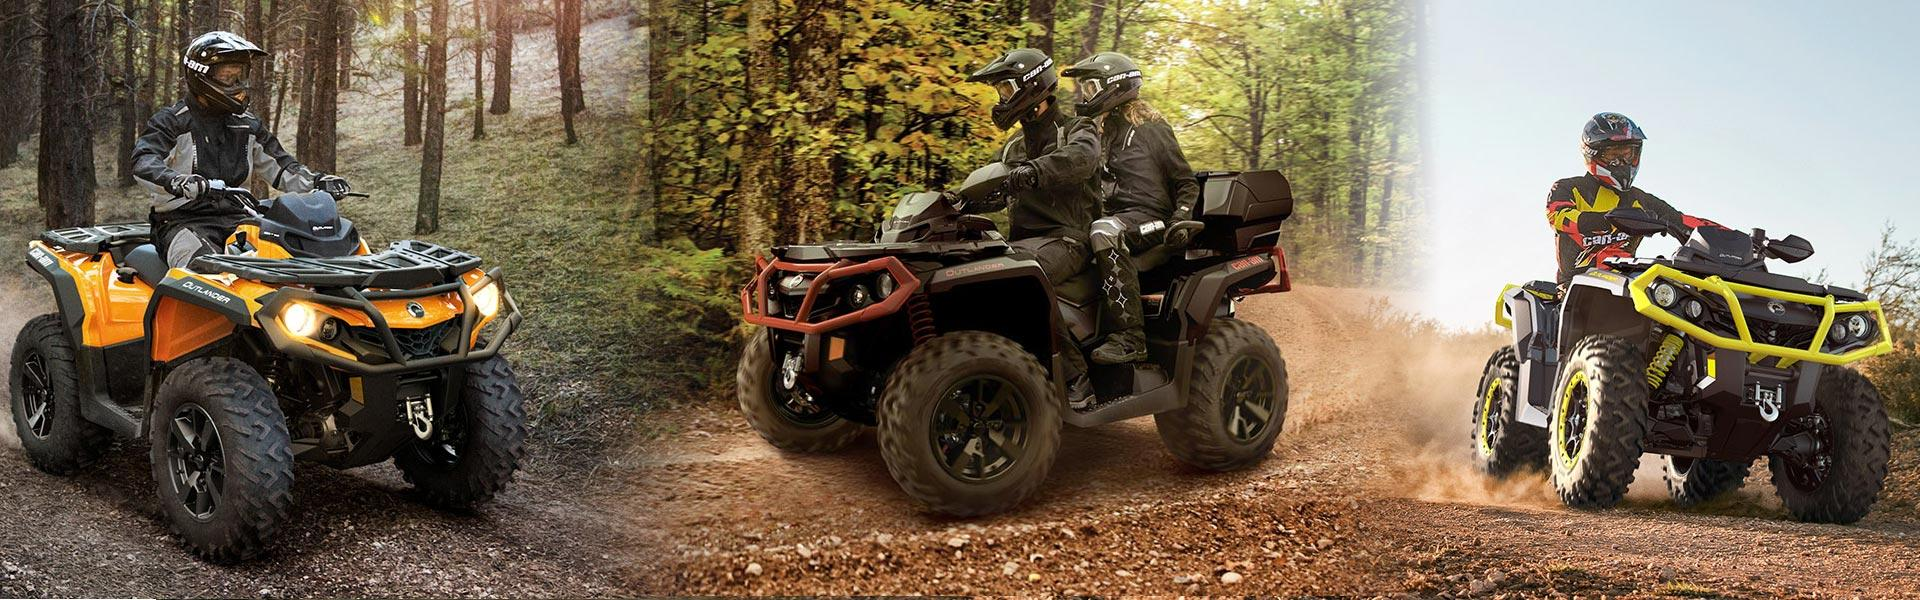 can-am-atv-lineup-2019